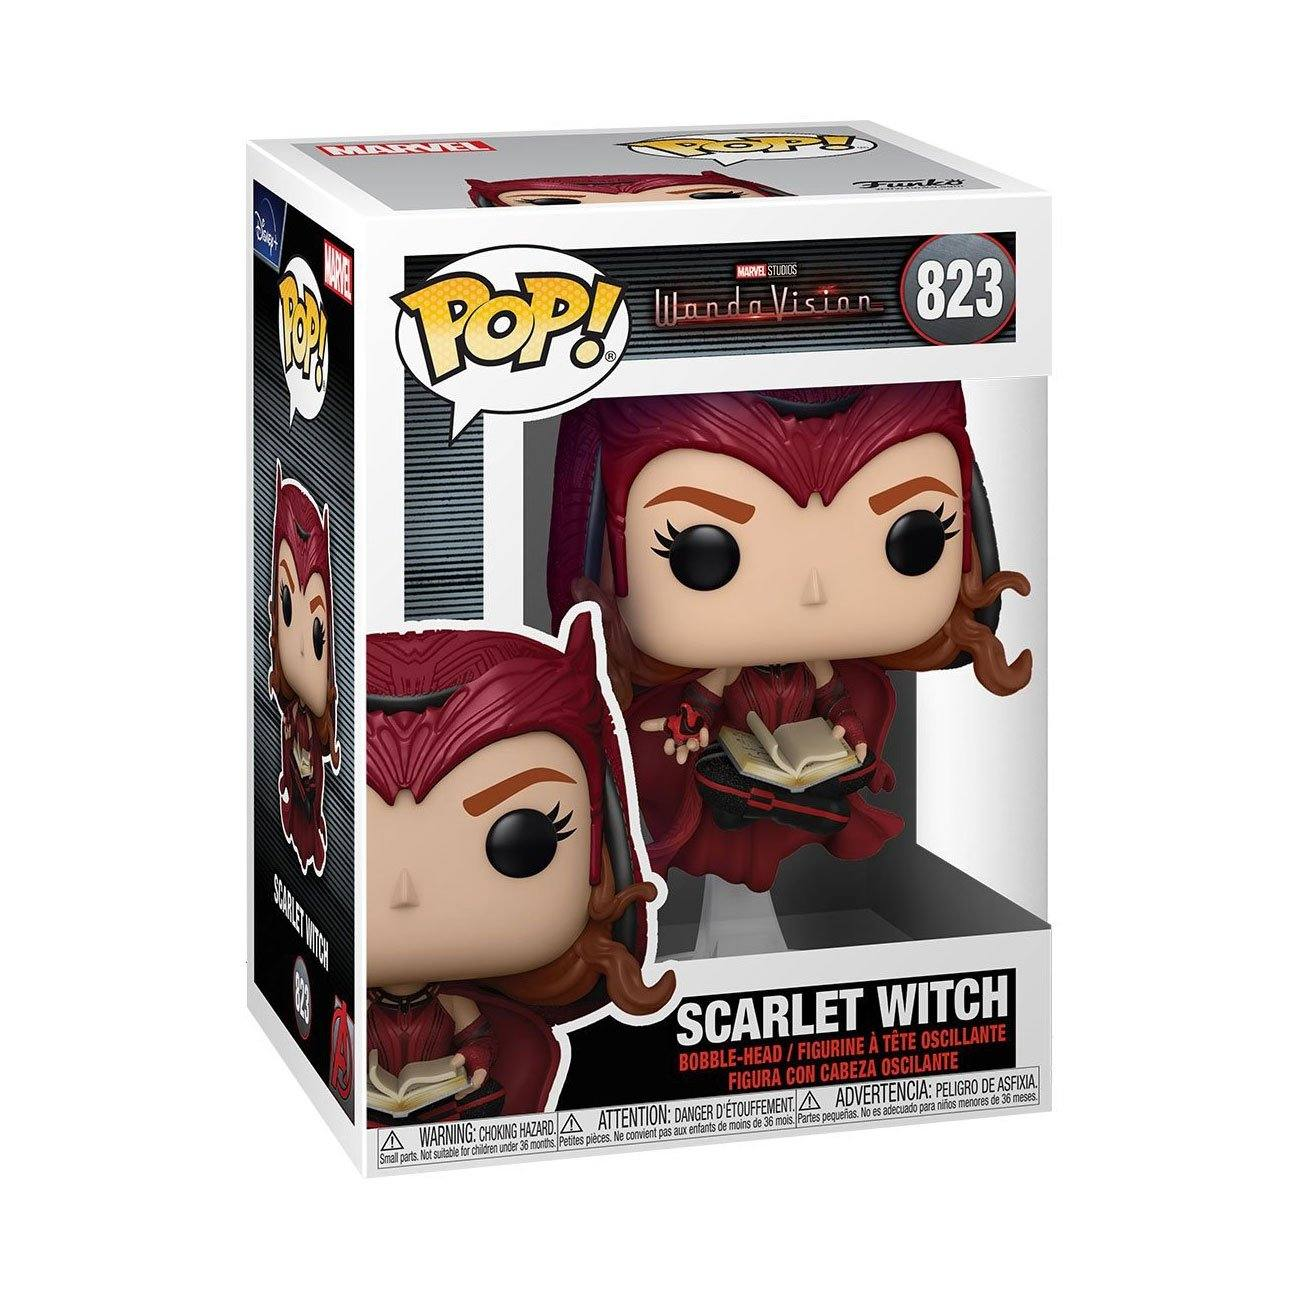 Scarlet Witch #823 Wandavision Funko POP! Marvel [PRE-ORDER EXPECTED SUMMER 2021*] POP! Funko